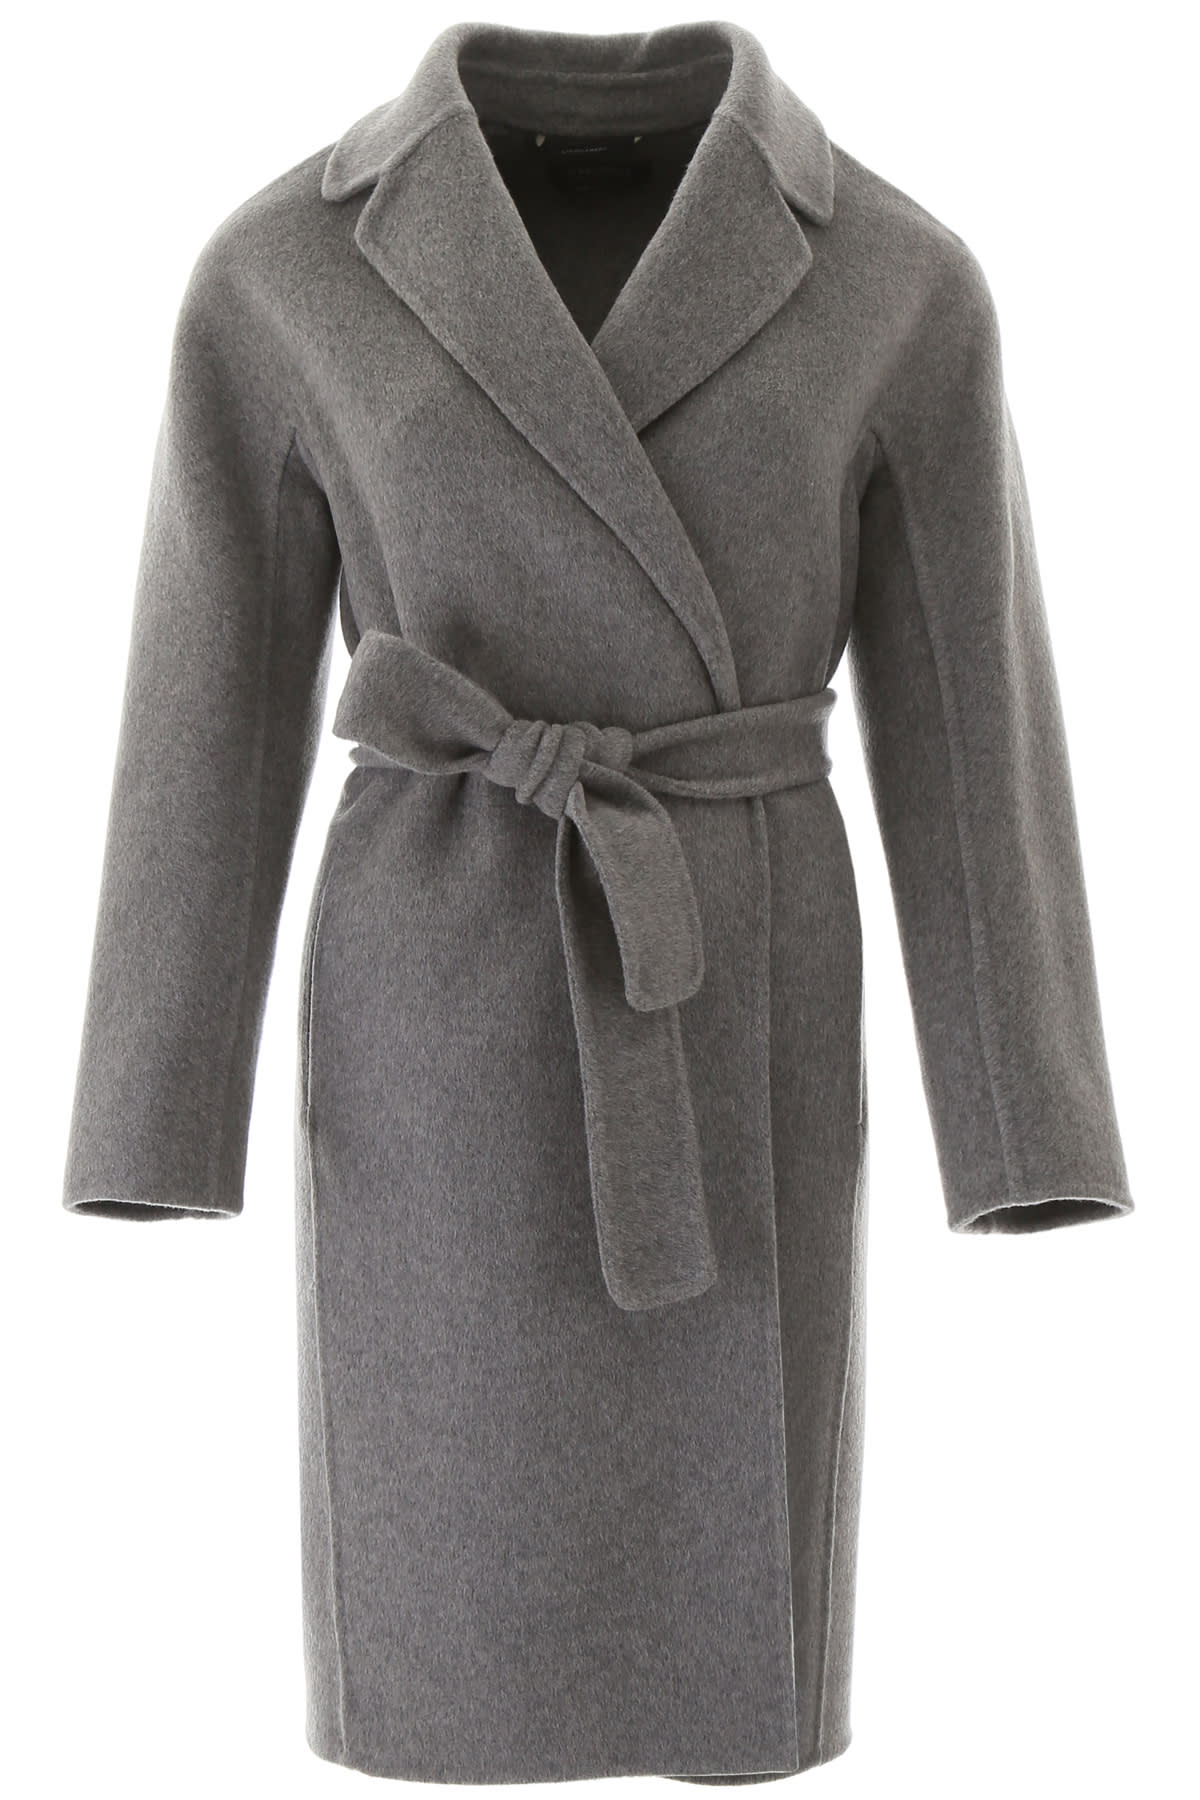 S Max Mara Here is The Cube Fertile Coat